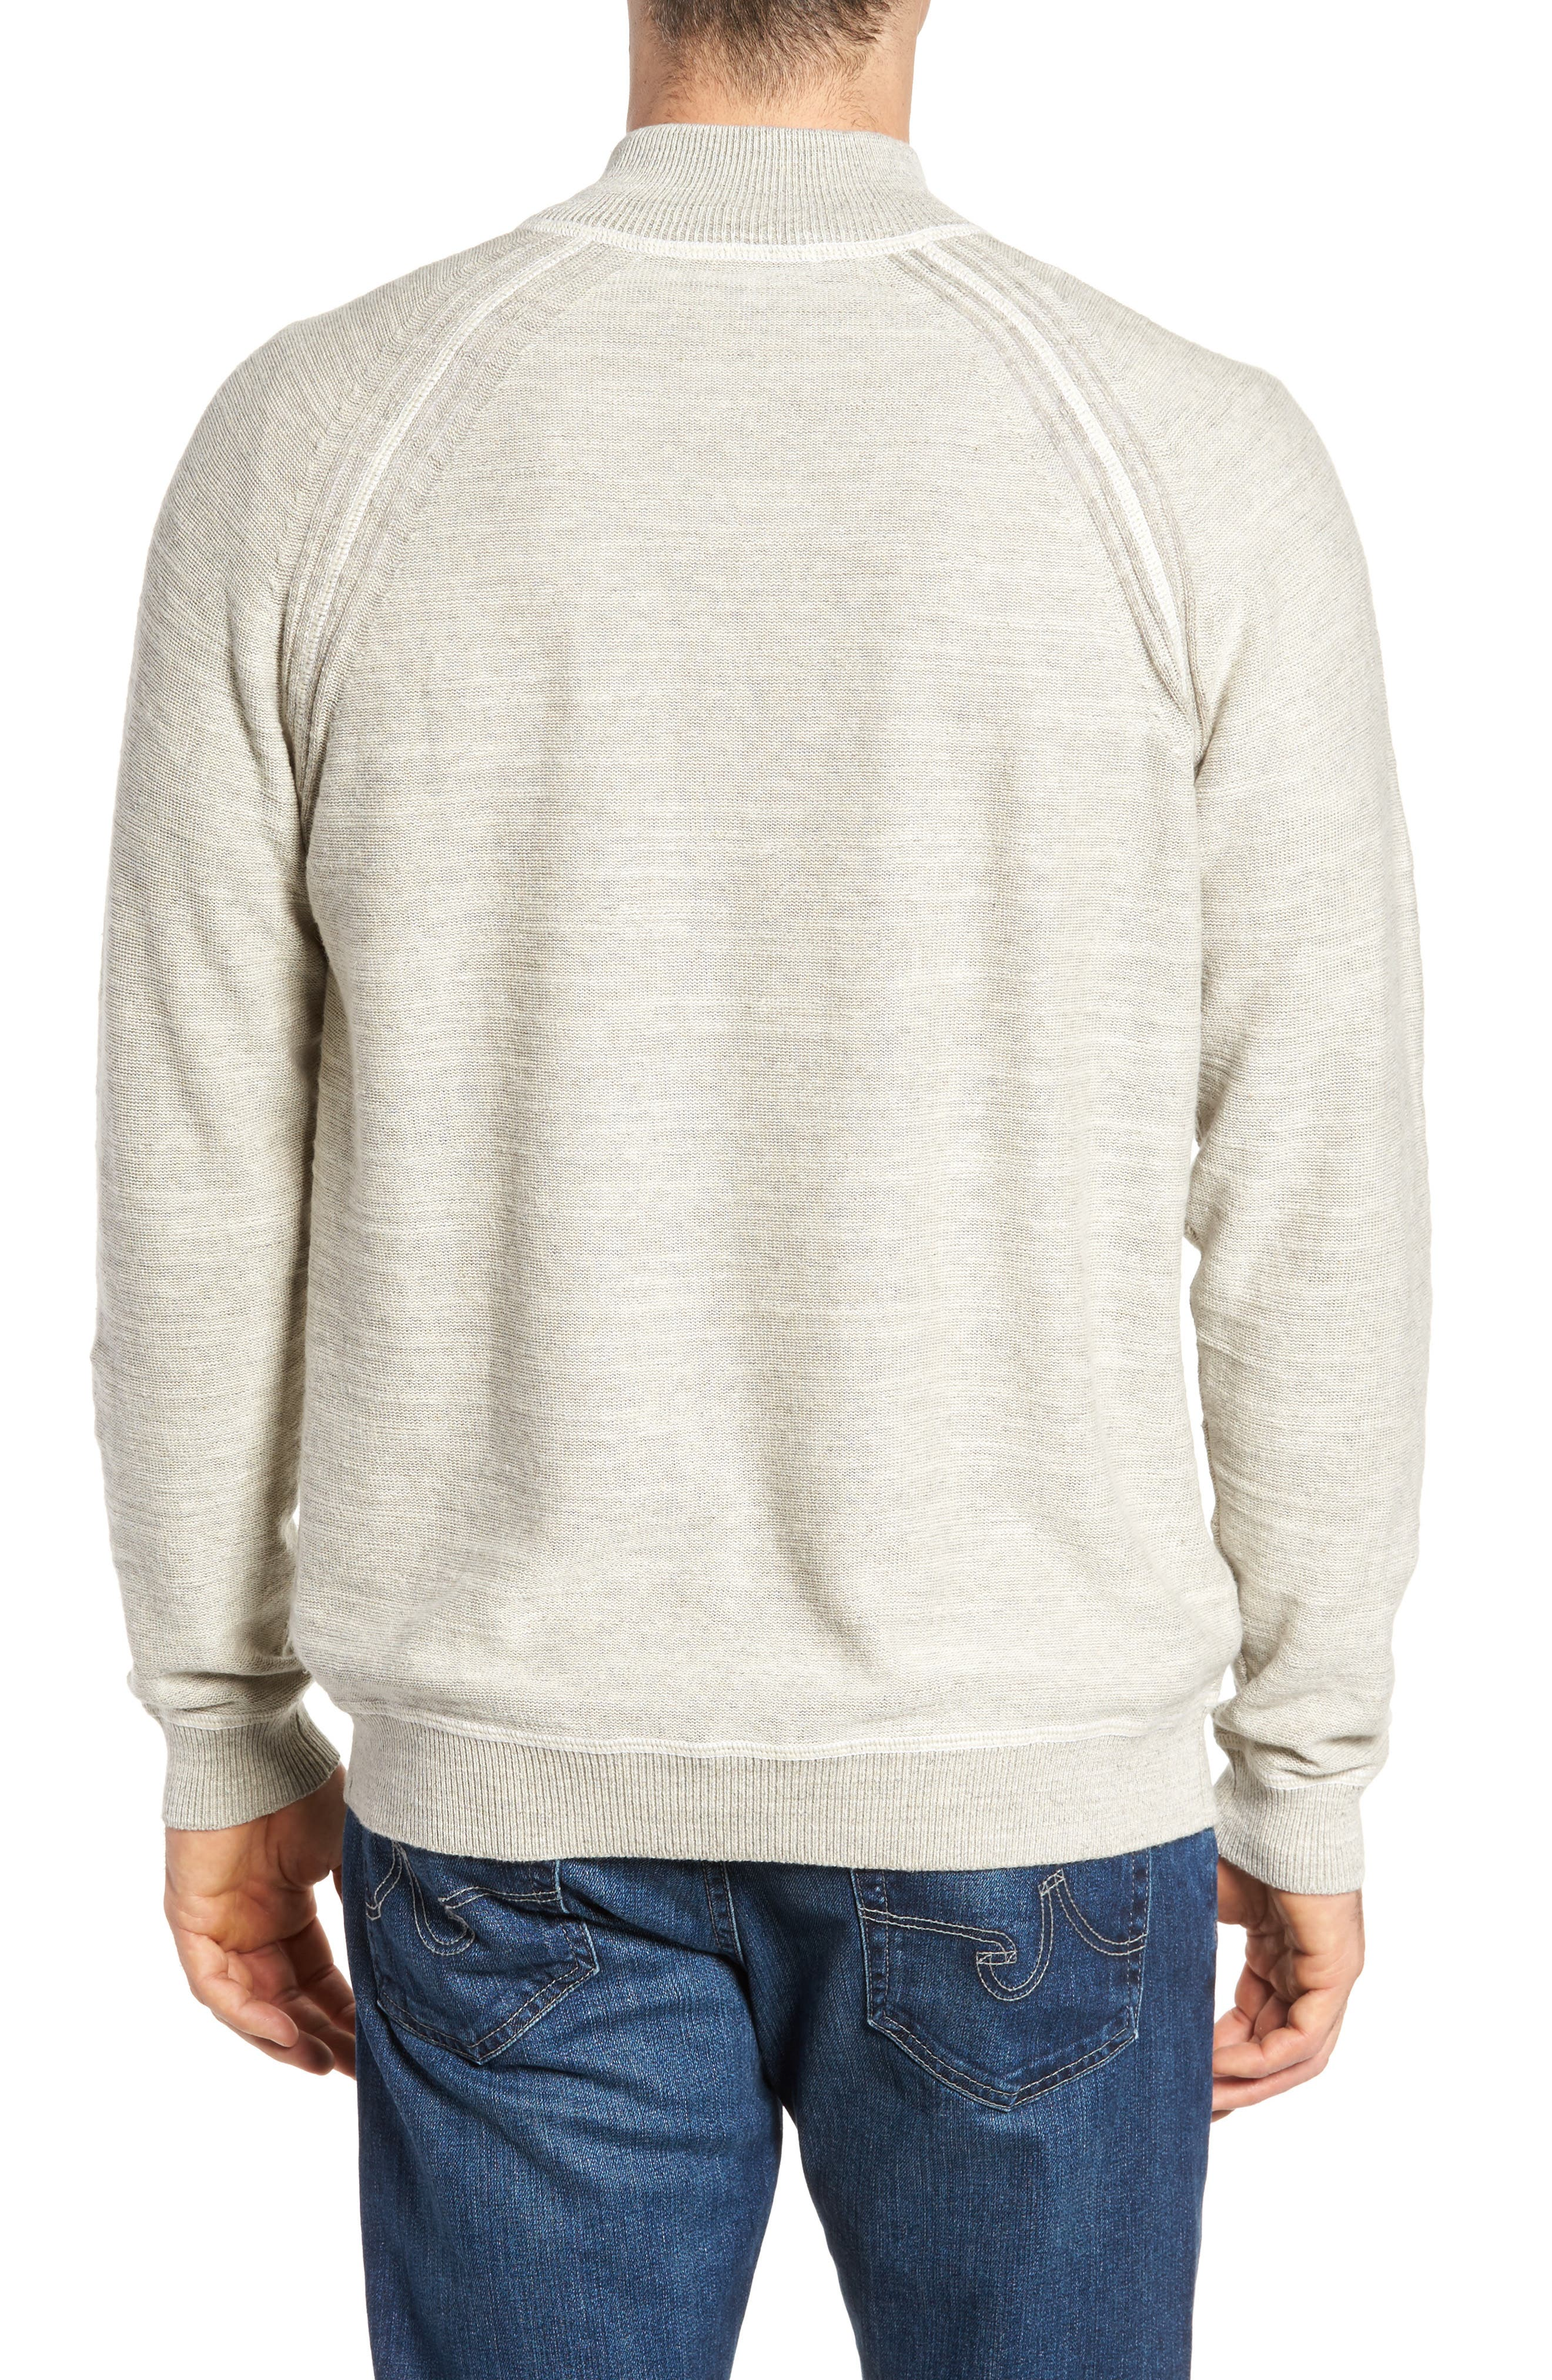 Sandy Bay Half-Zip Pullover,                             Alternate thumbnail 2, color,                             200